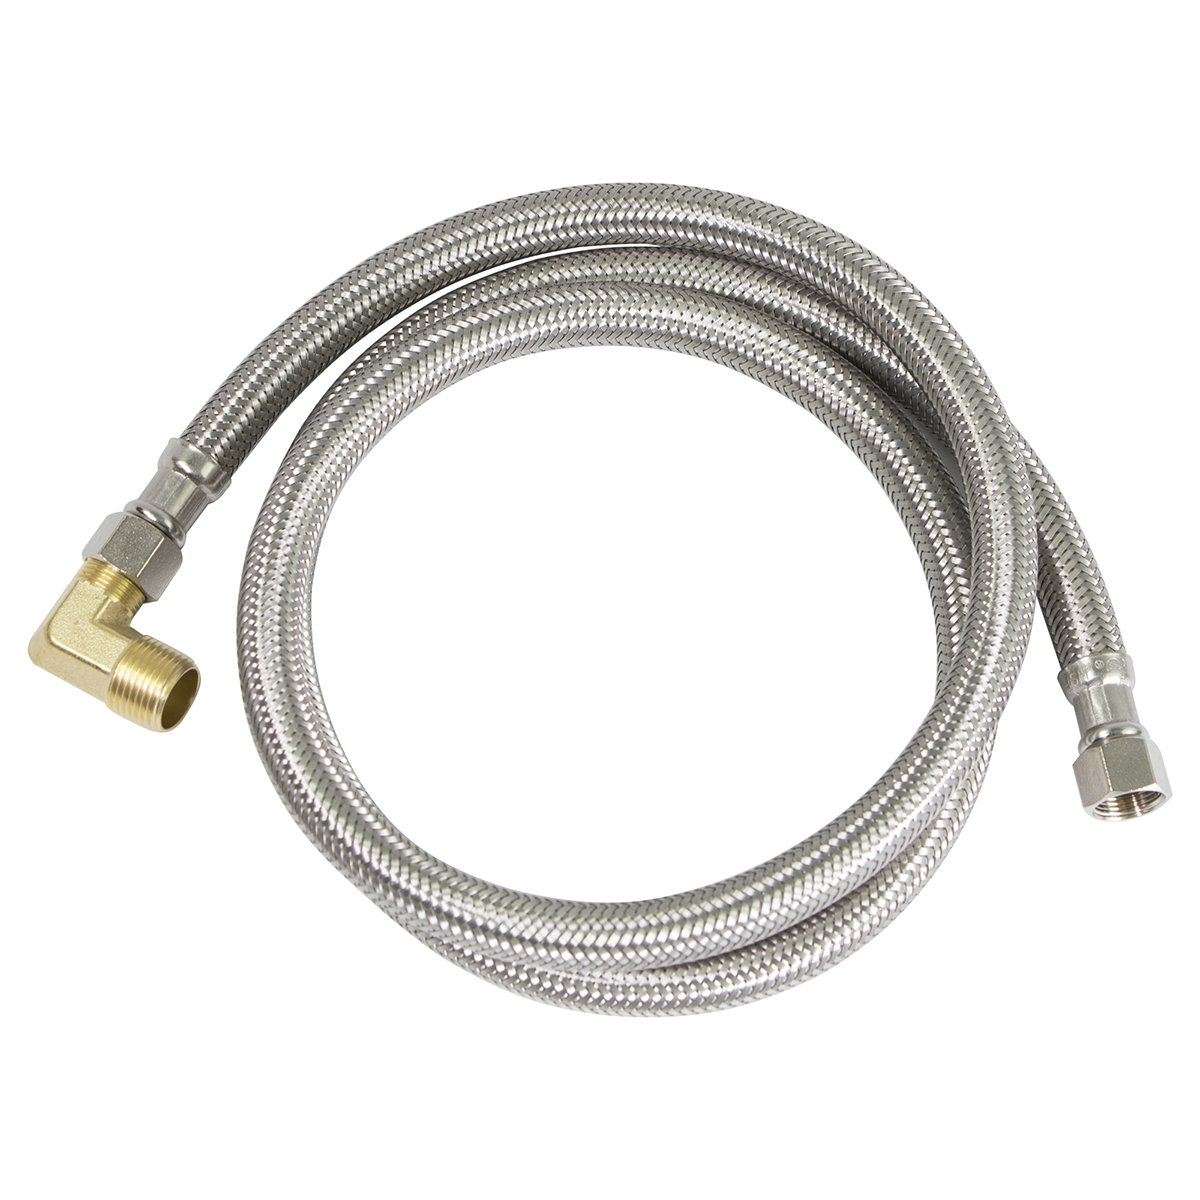 Everflow Supplies 27748PR-NL Premium Lead Free Braided Stainless Steel Premium Dishwasher Connector Hose with PVC Inner Tube, 3/8 Compression Connections and Brass Elbow, 48 48